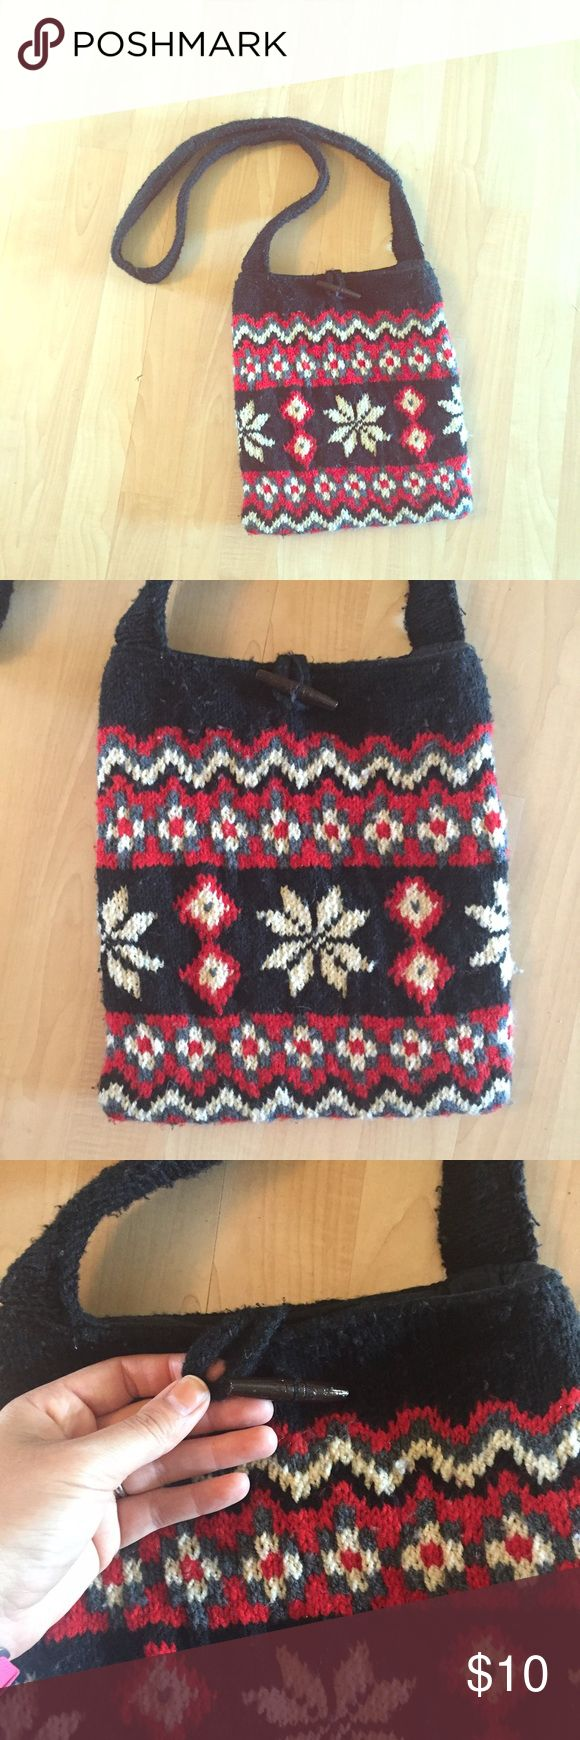 dELiA*s Fairisle Sweater Messenger Bag Navy, red , gray, and white knit sweater material Lined inside Velcro closure on inside with wooden toggle and loop closure on the outside Makes a great holiday gift! *I will gladly use my fabric shaver to remove all the pilling before shipping this.  #messengerbag #crossbody #fairisle #sweaterbag #holiday #gift Delia's Bags Crossbody Bags